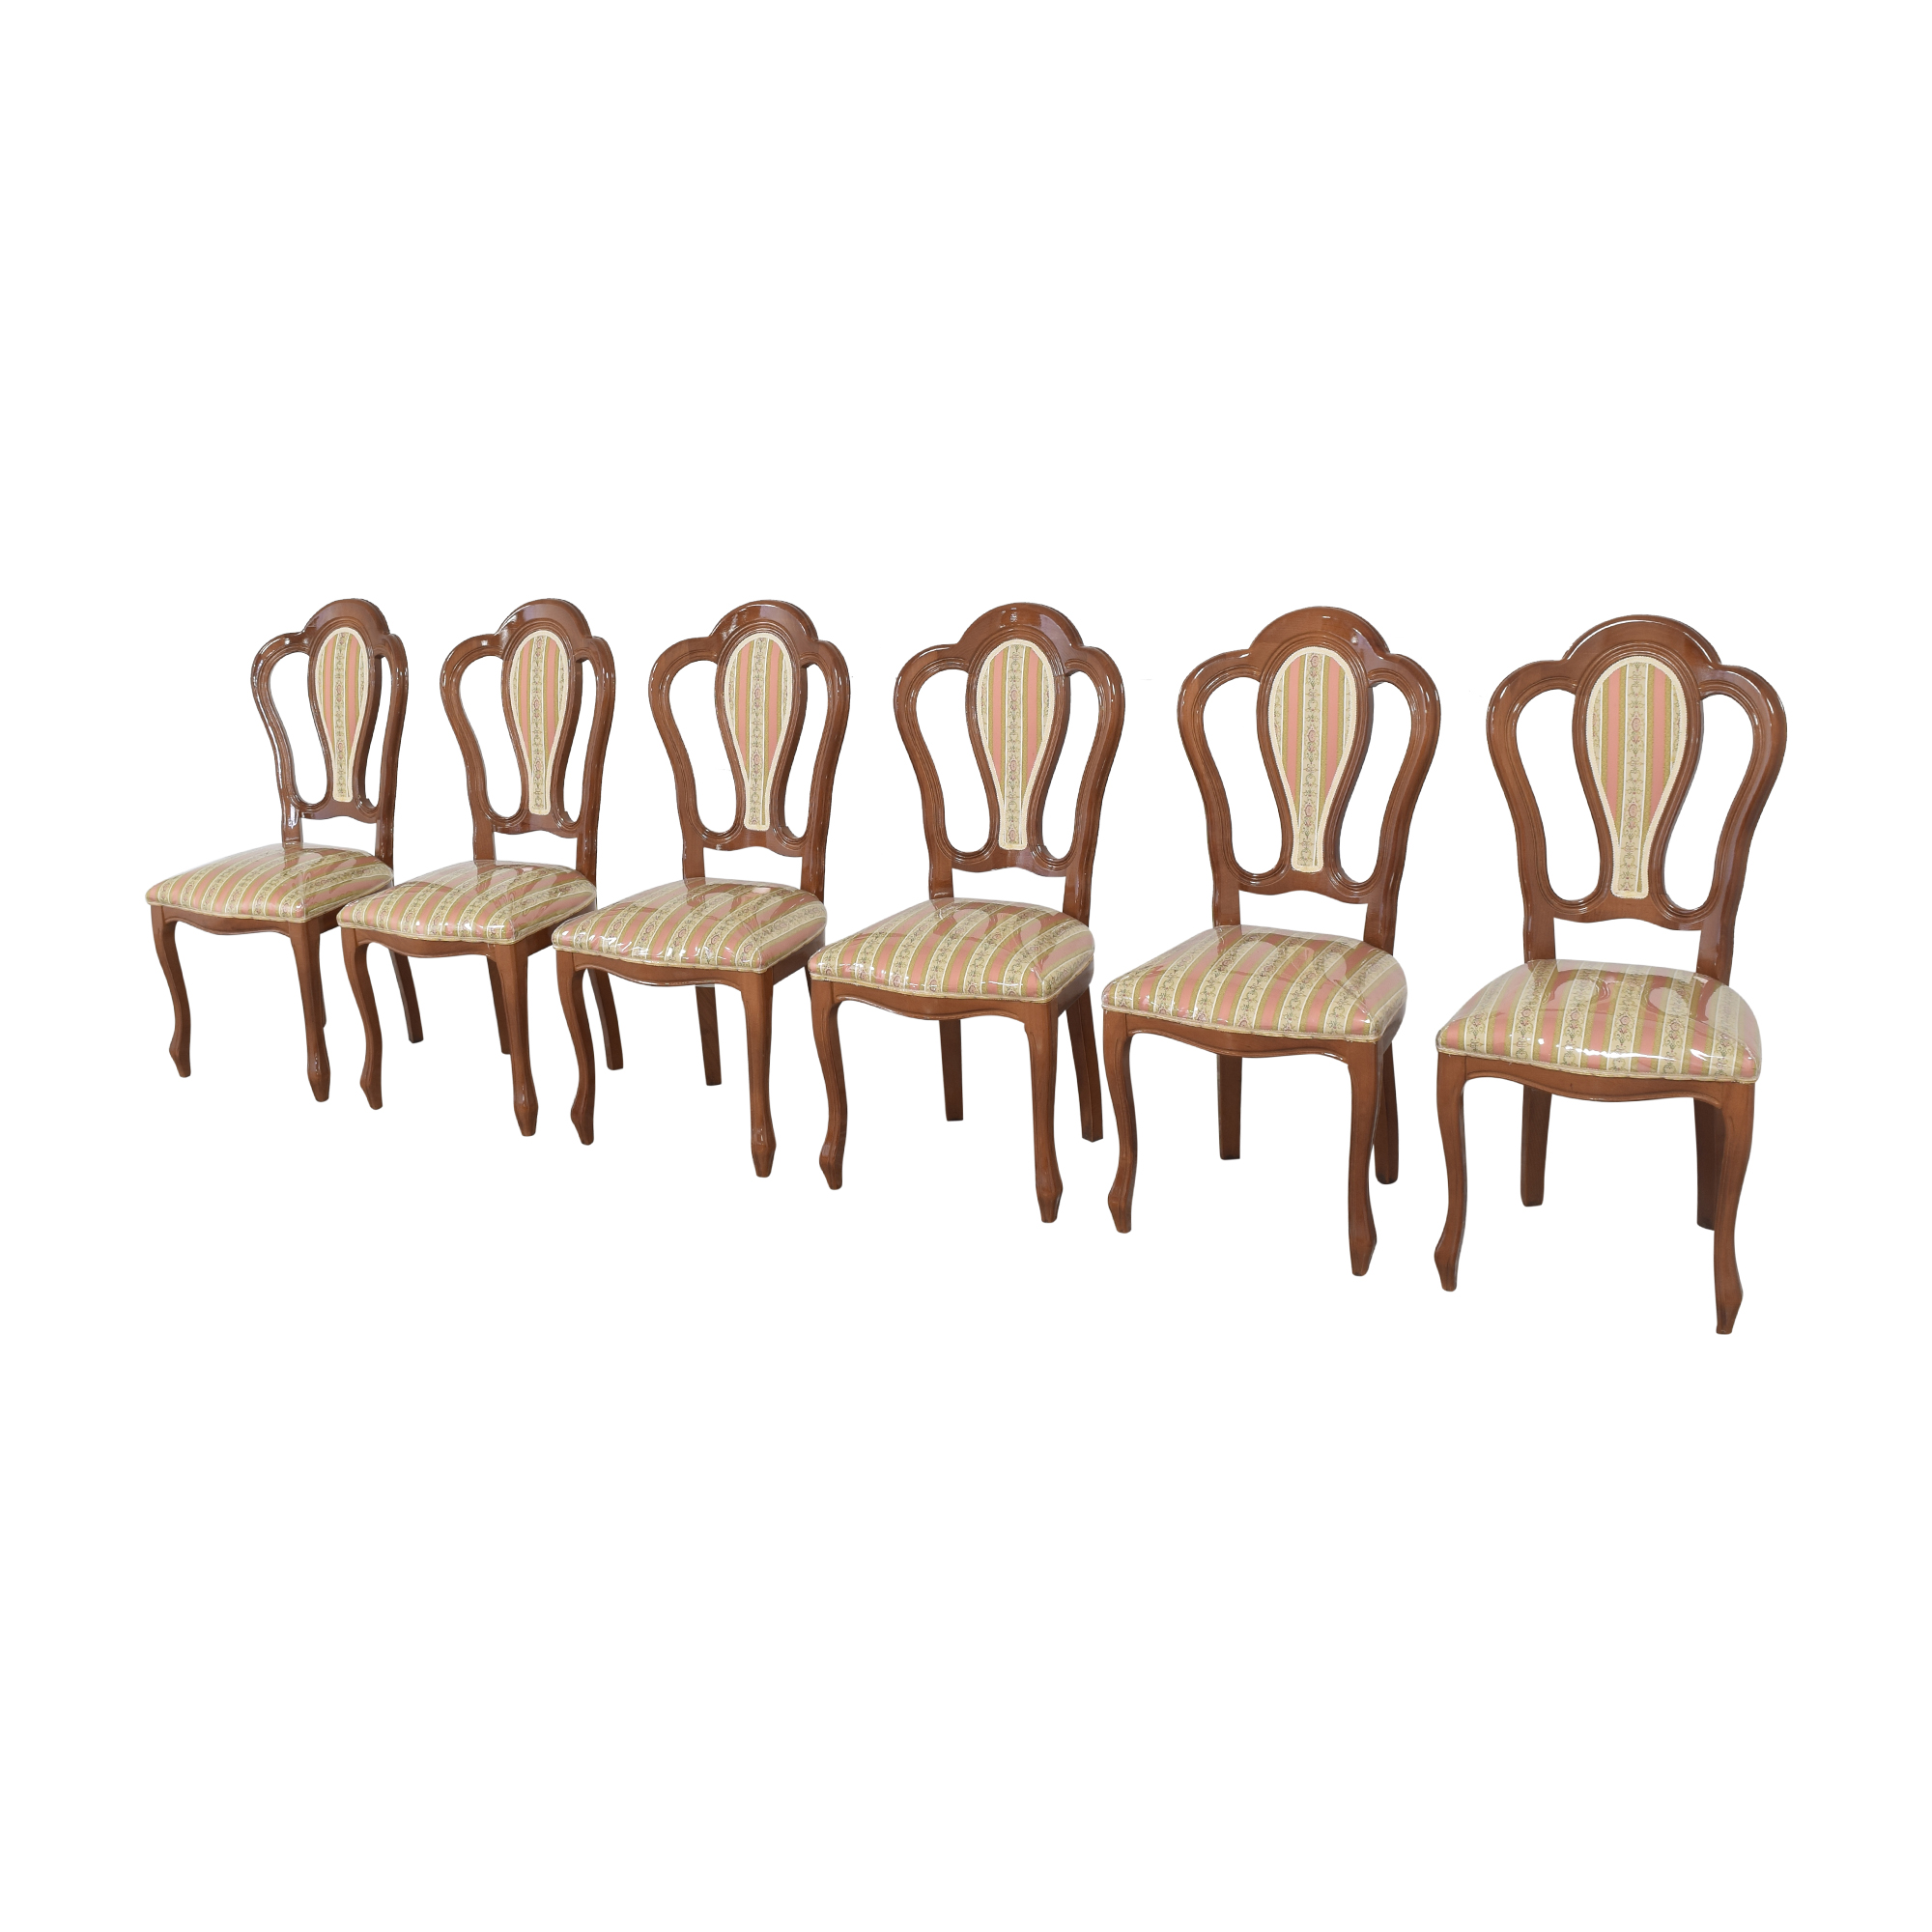 Upholstered Dining Chairs coupon